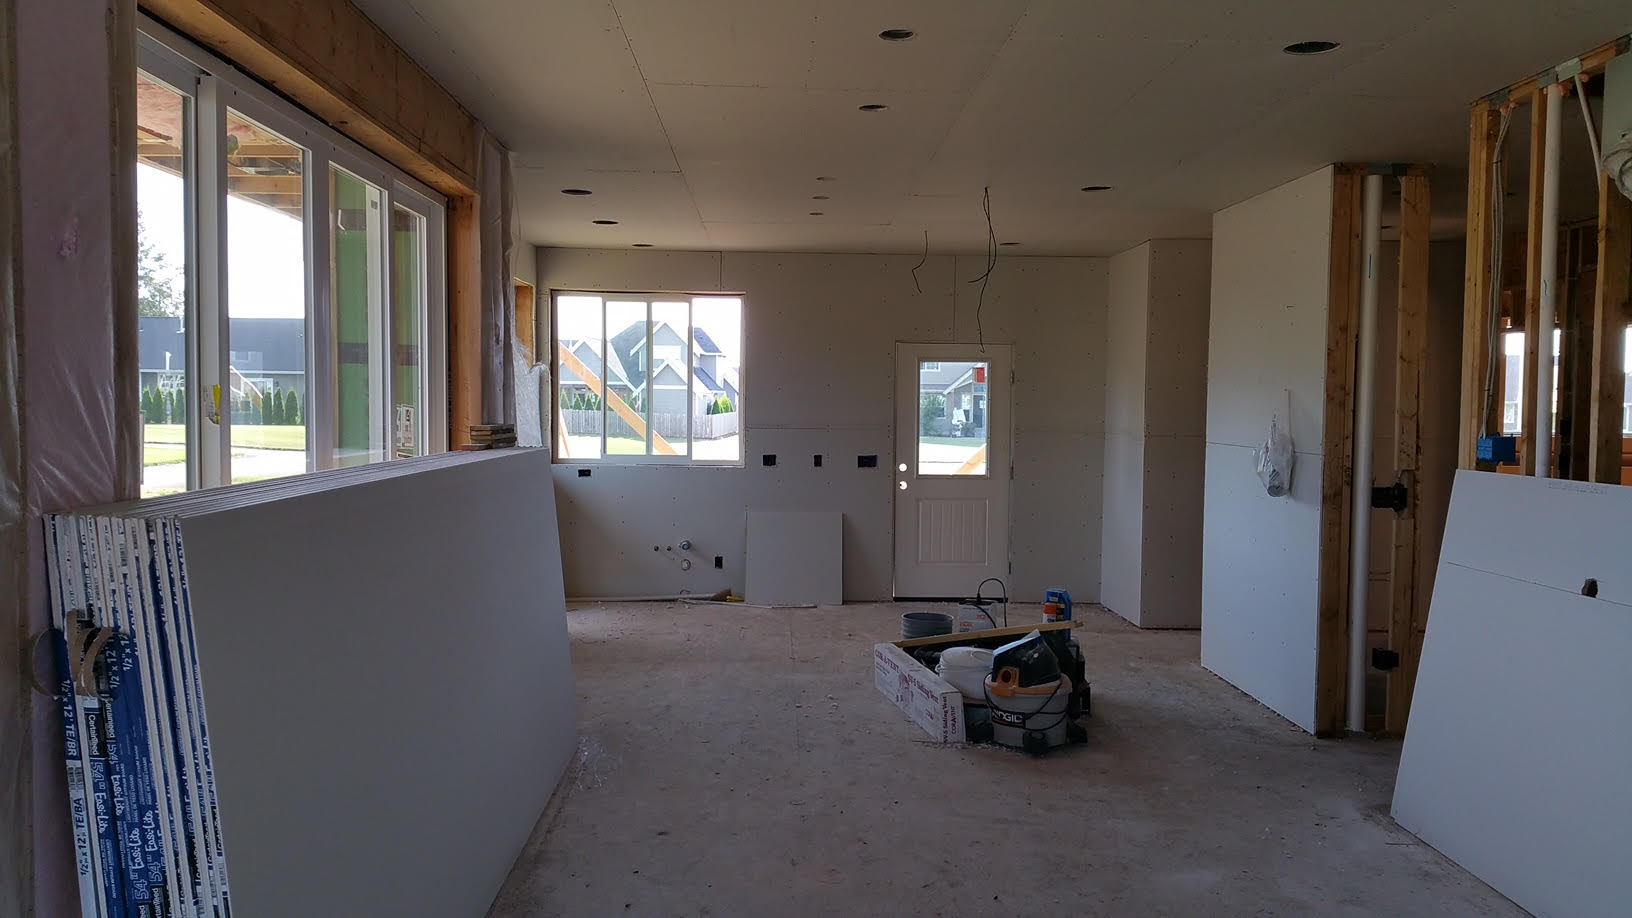 Standing in the living room, looking towards the dining room and kitchen.  With interior walls close to being done, interior trim work, flooring and cabinets will be installed.